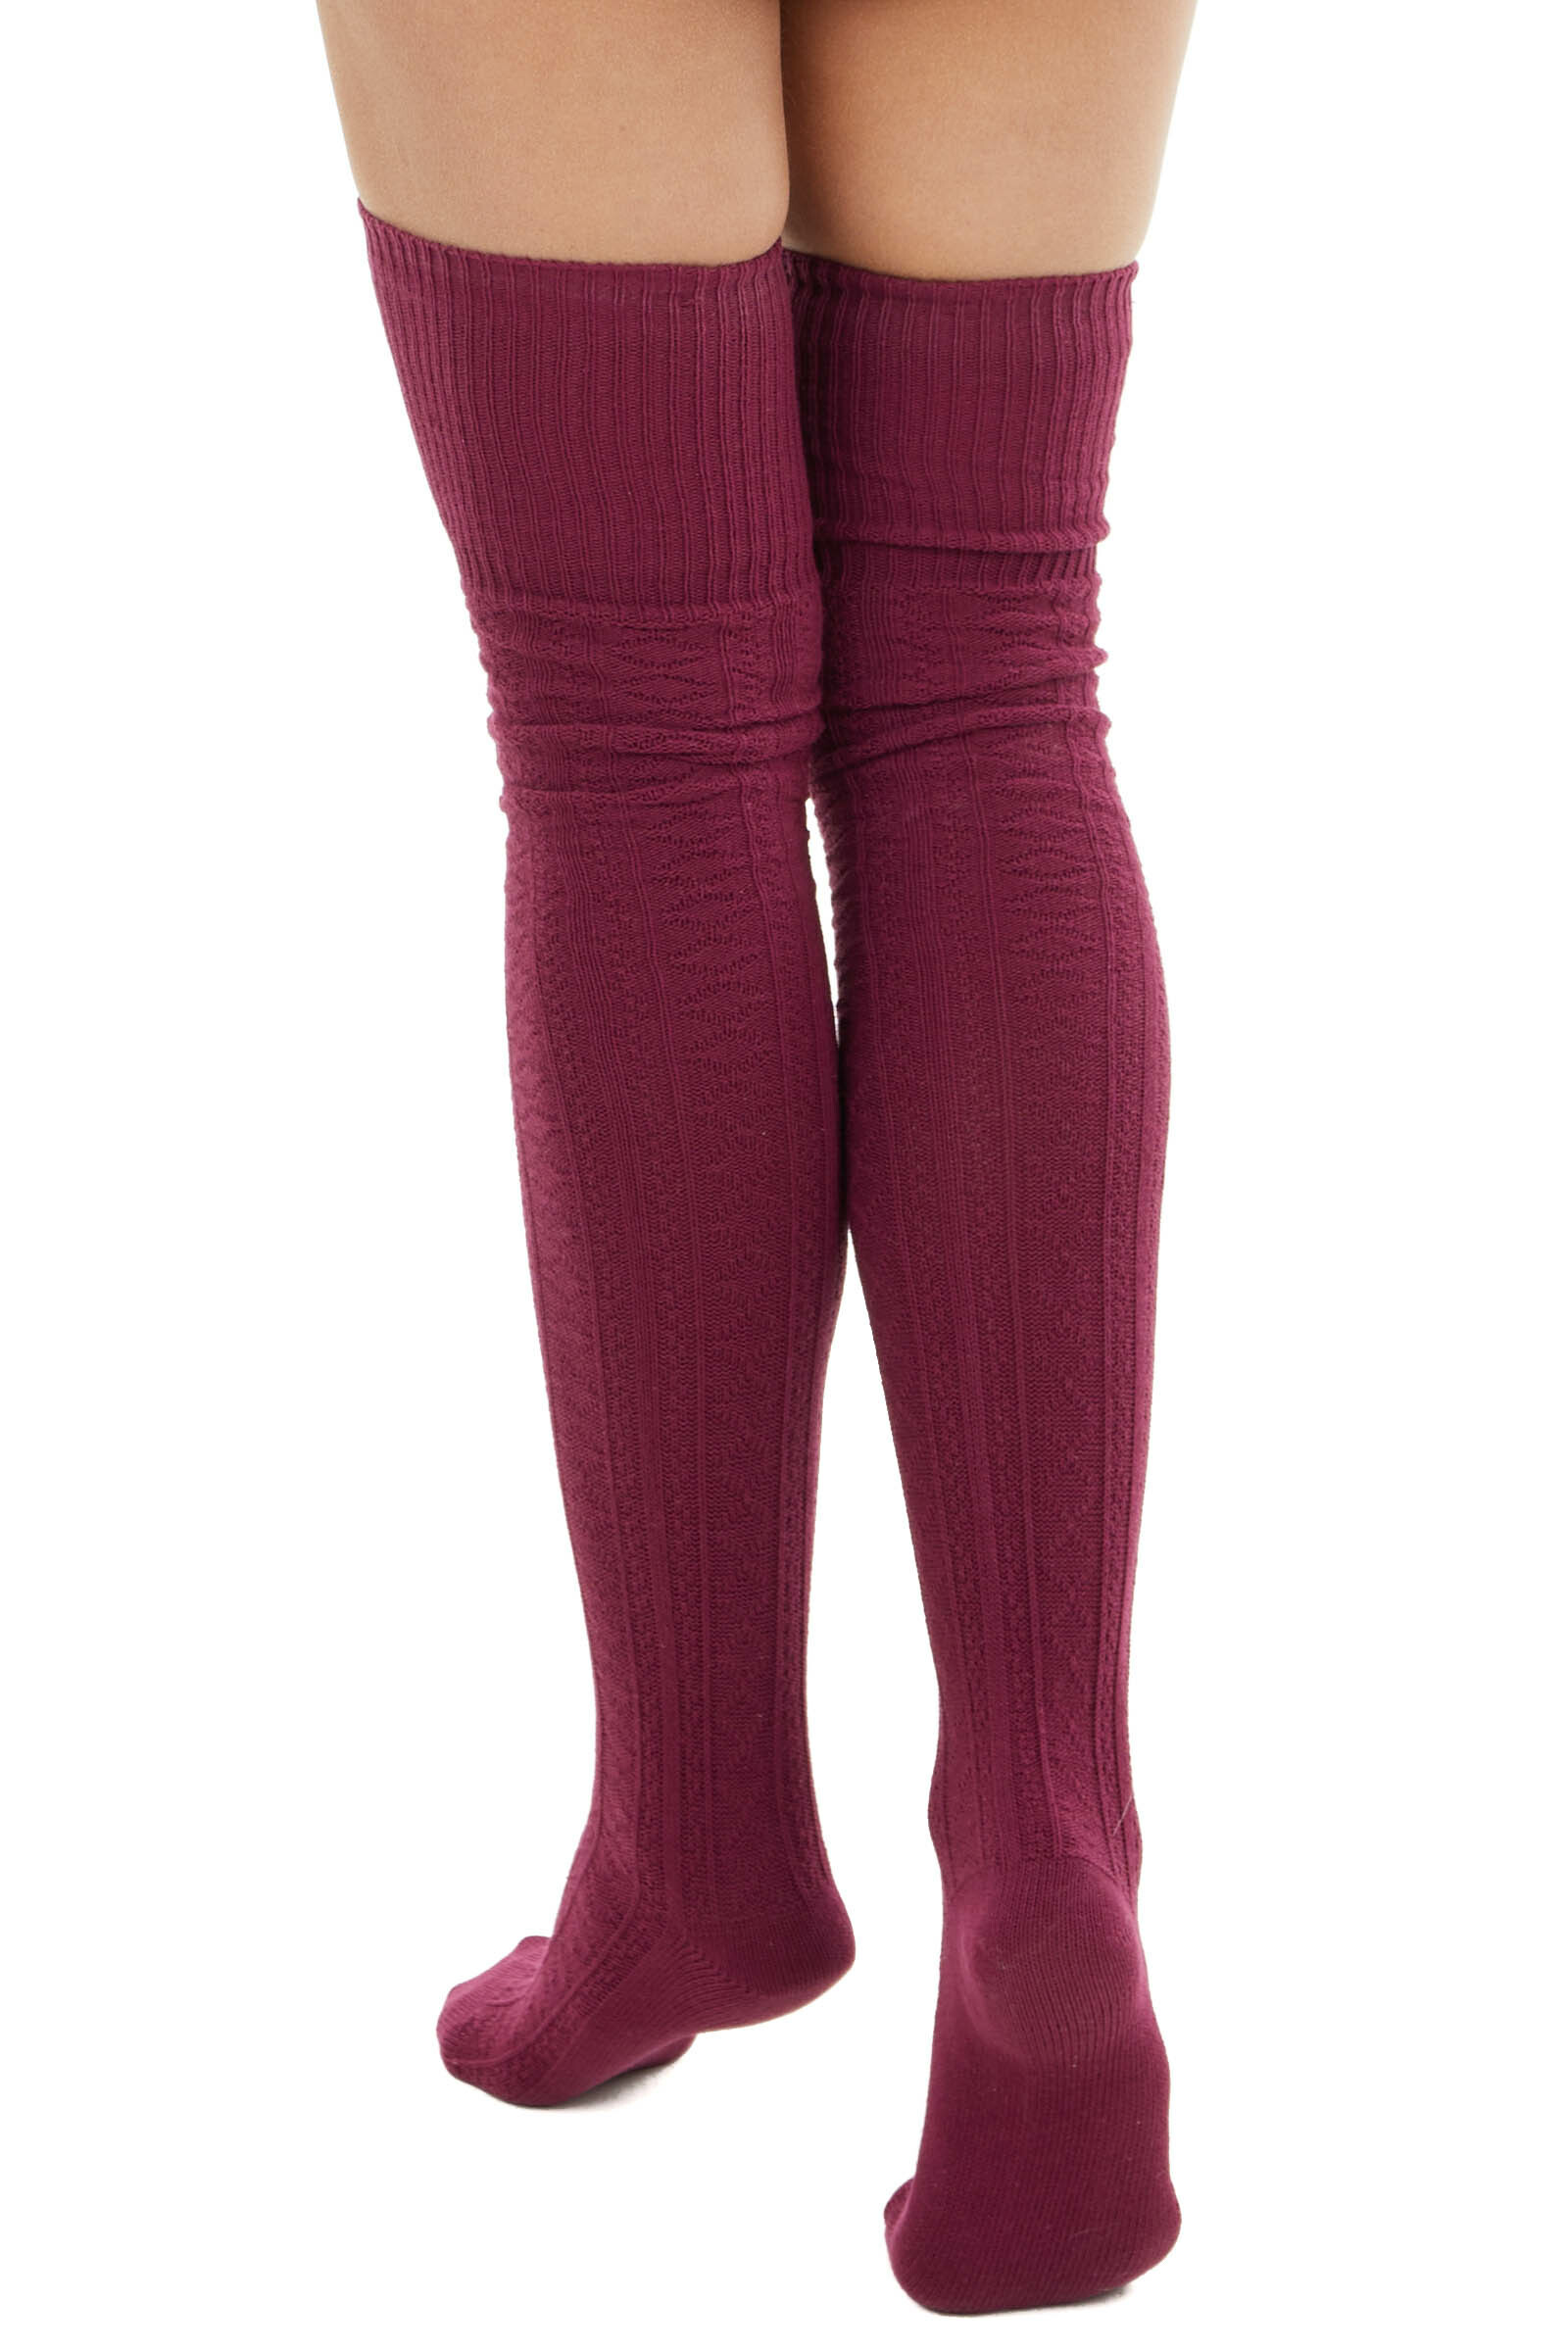 Burgundy Small Cable Knit Over the Knee High Fashion Socks